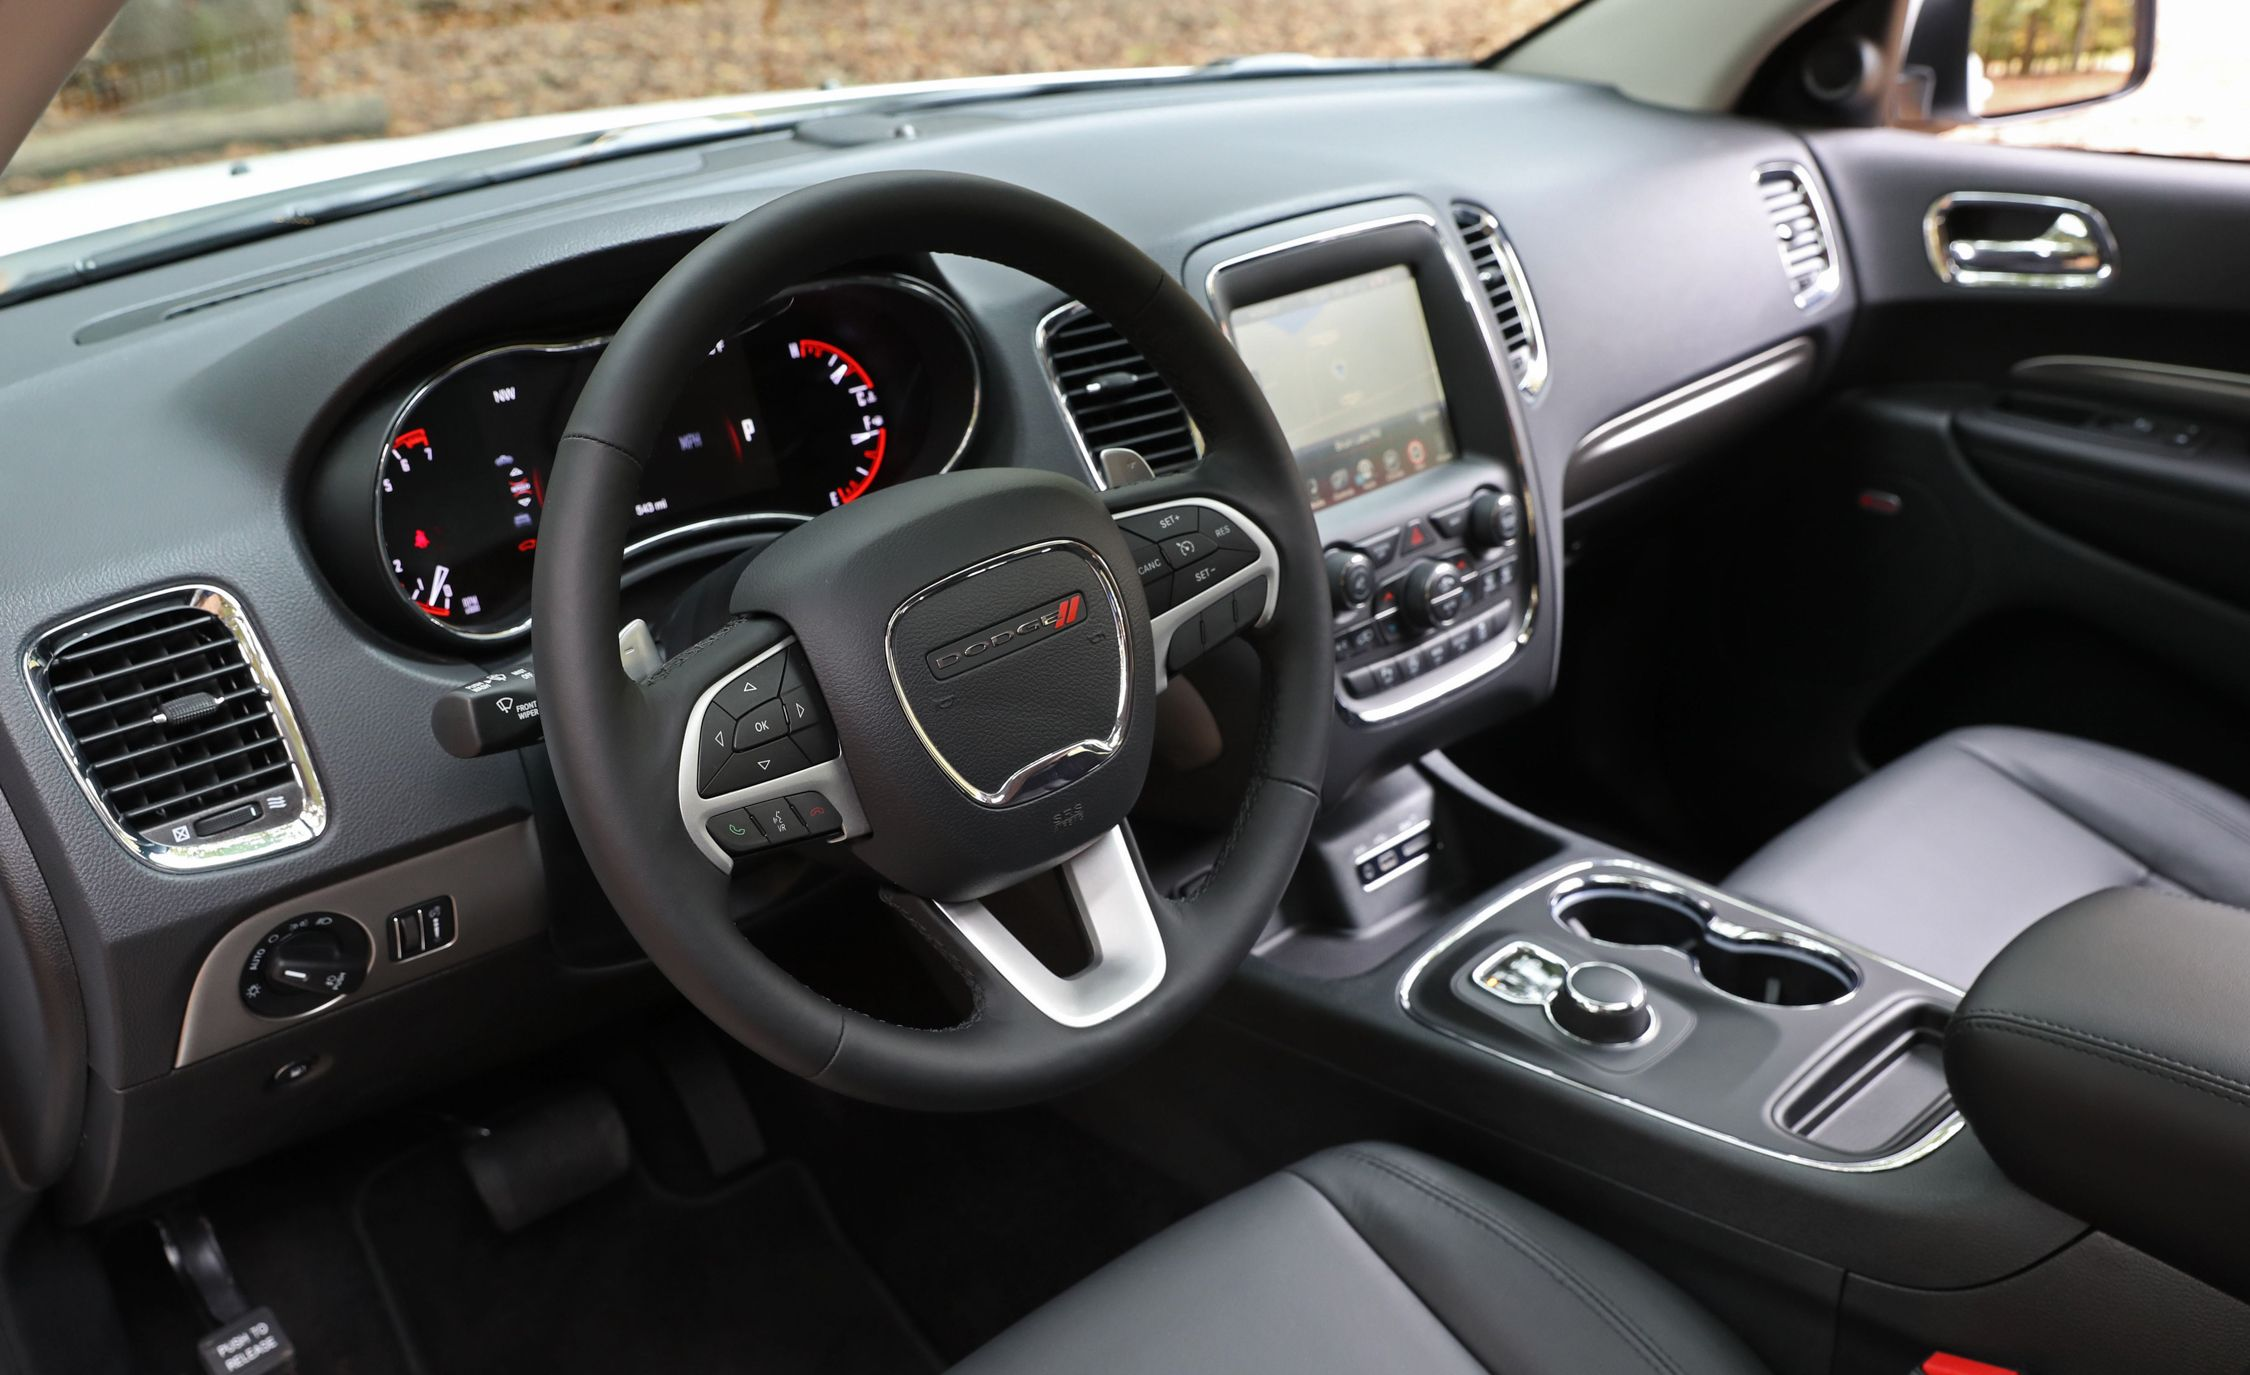 interior expressive blog durango dodge vs pic an exterior and journey edgy